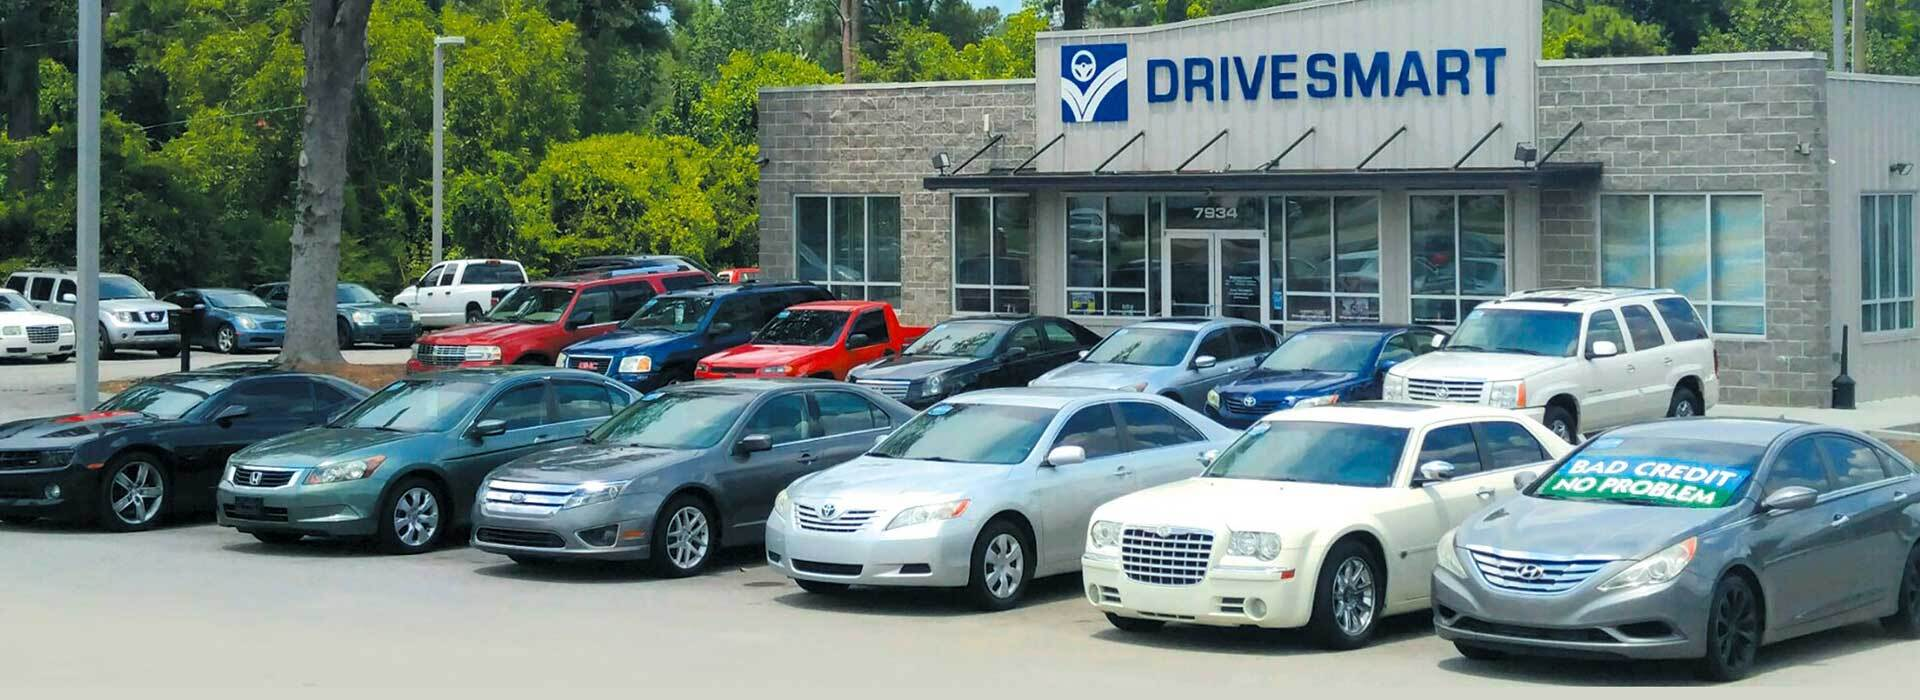 Dodge Dealership Columbia Sc >> Used Car Dealership Columbia Sc Drivesmart